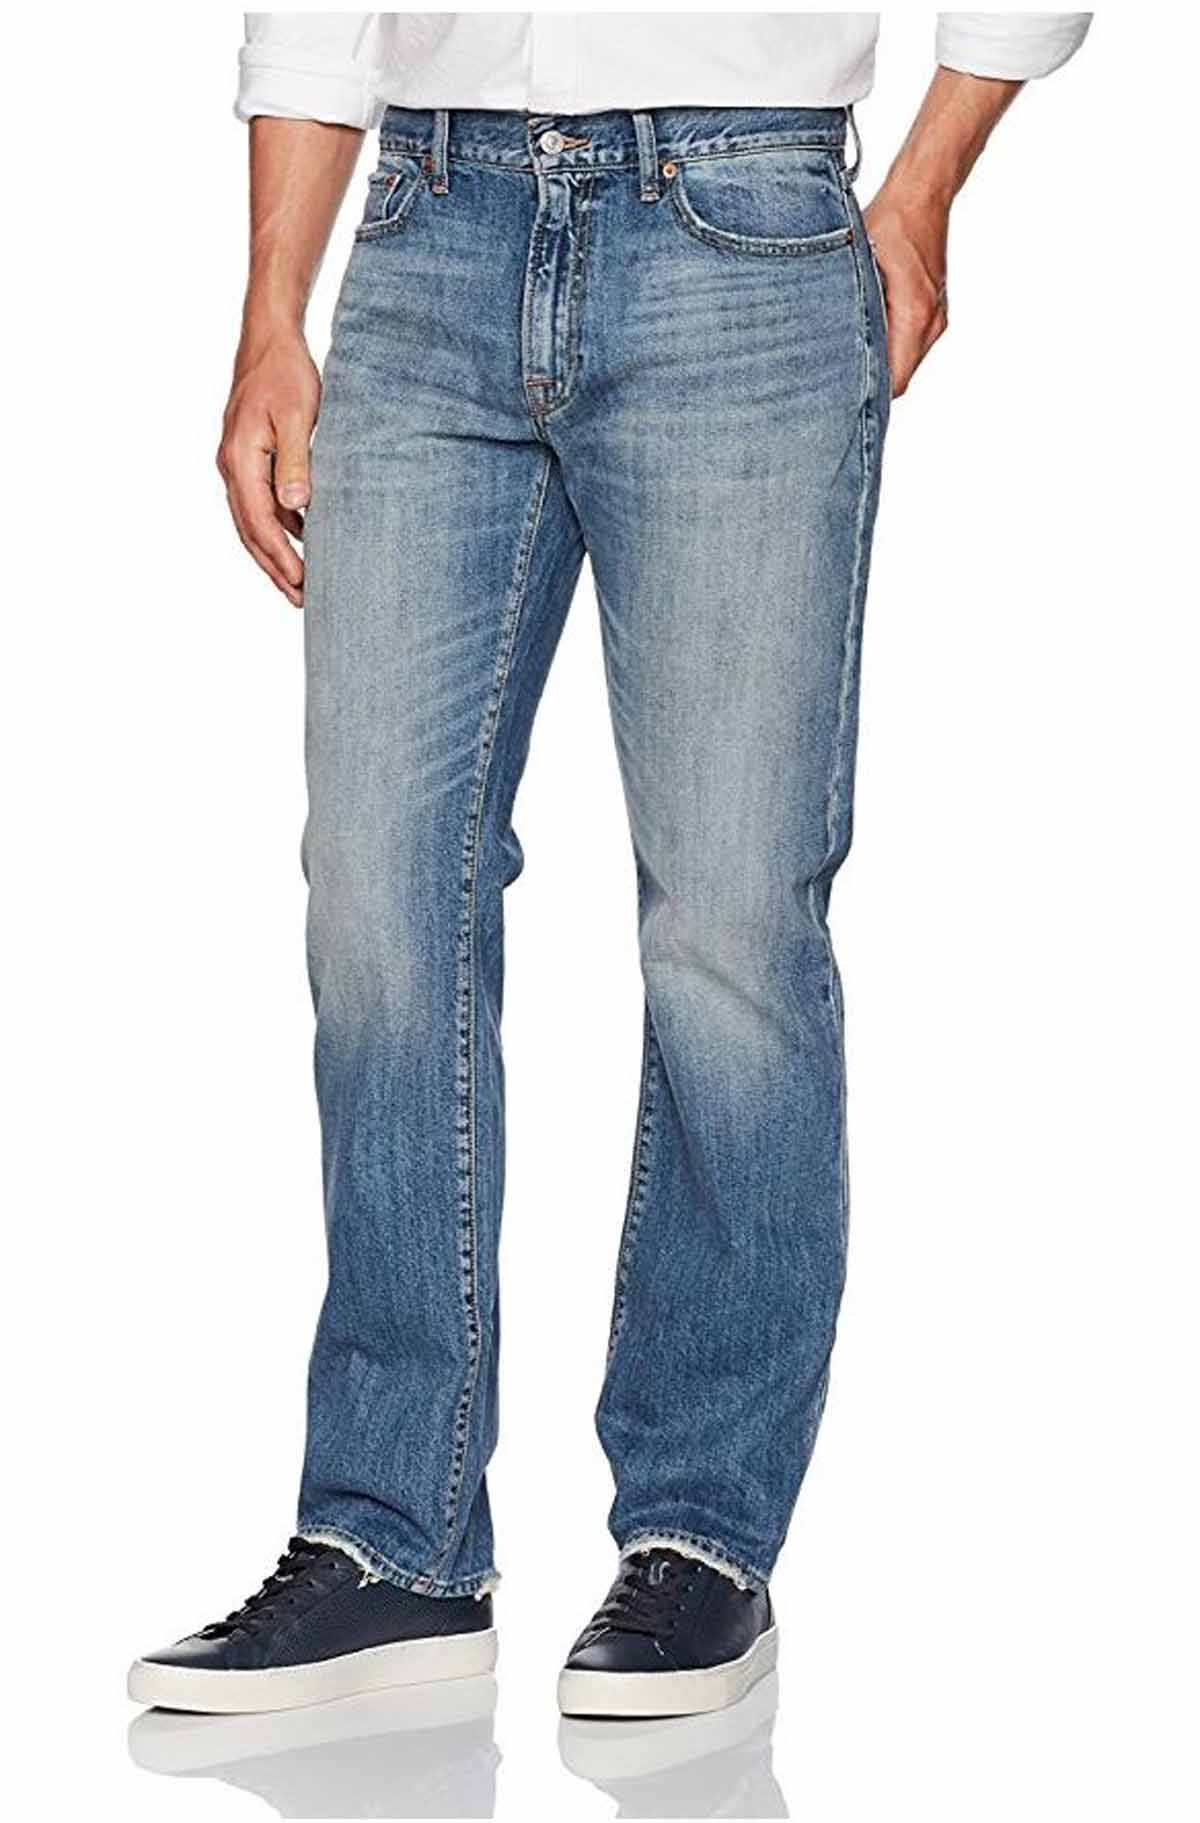 12a3e32cd1e Details about Lucky Brand Mens 363 Vintage Straight Fit Jeans